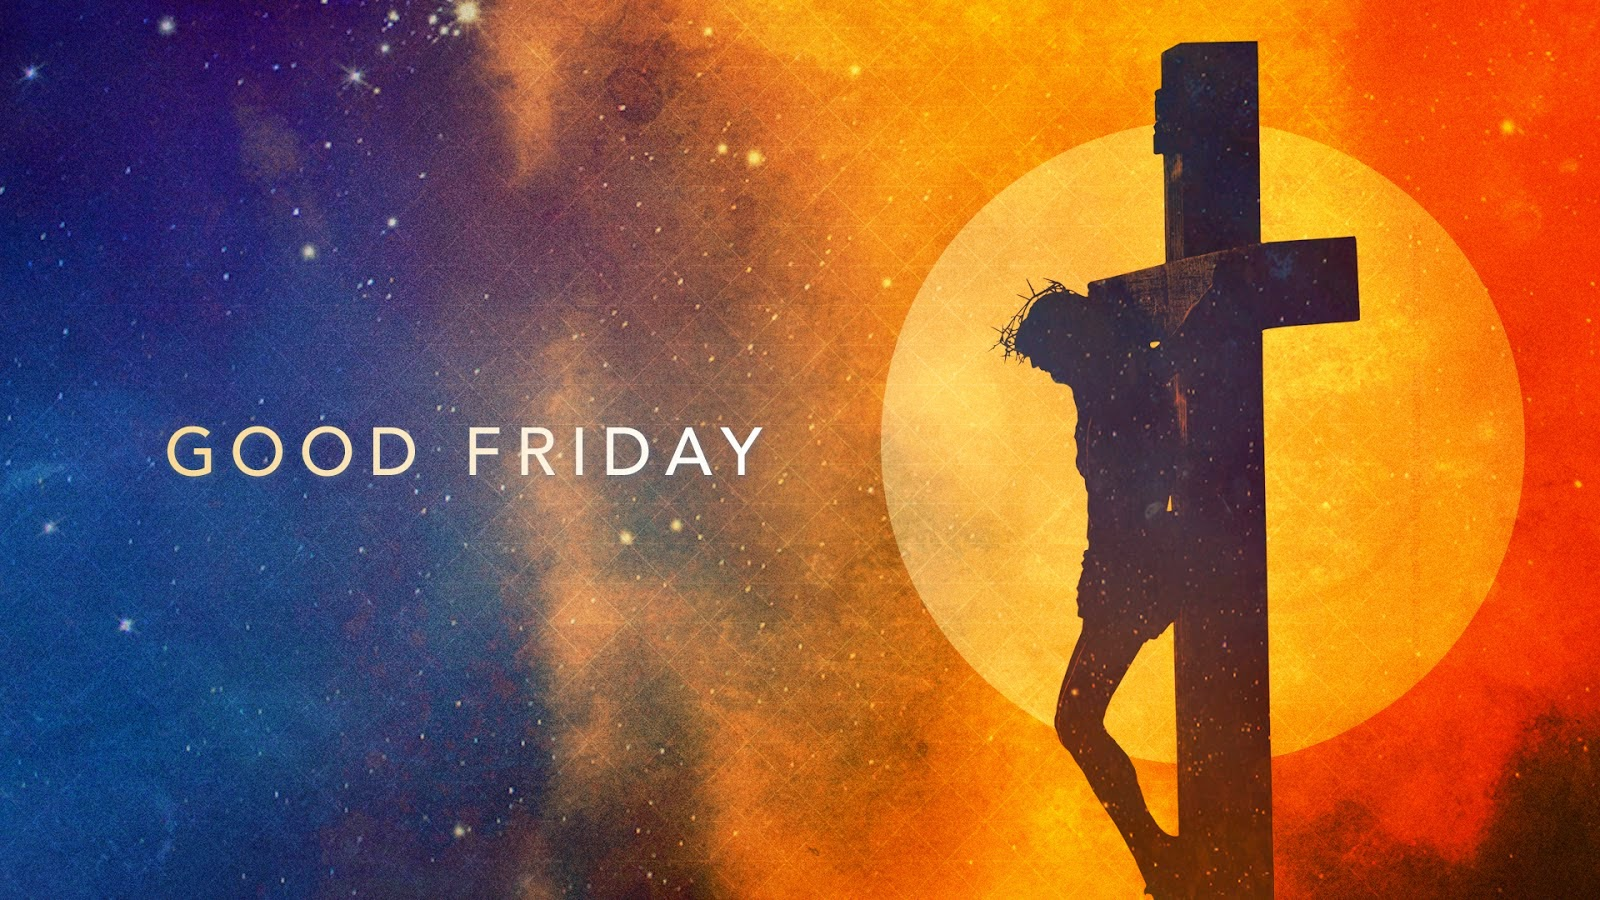 Good Friday 2017 Wallpaper free download